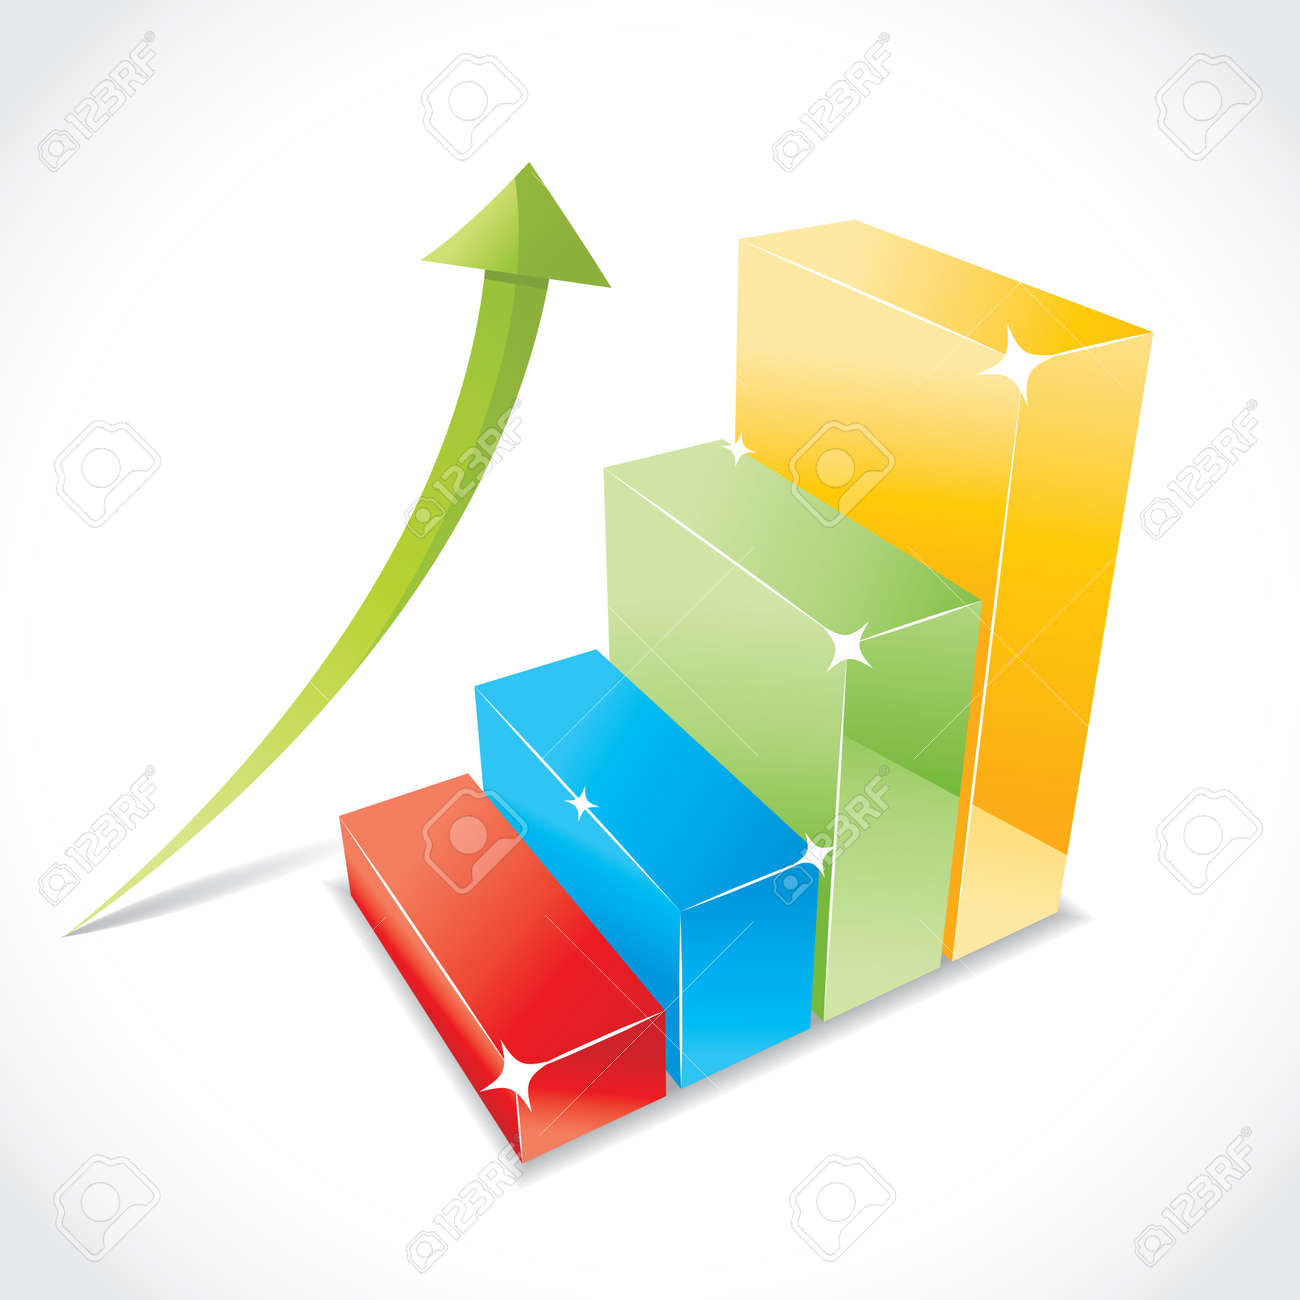 Business color graph with rising equity arrow, illustration Stock Vector - 17181488